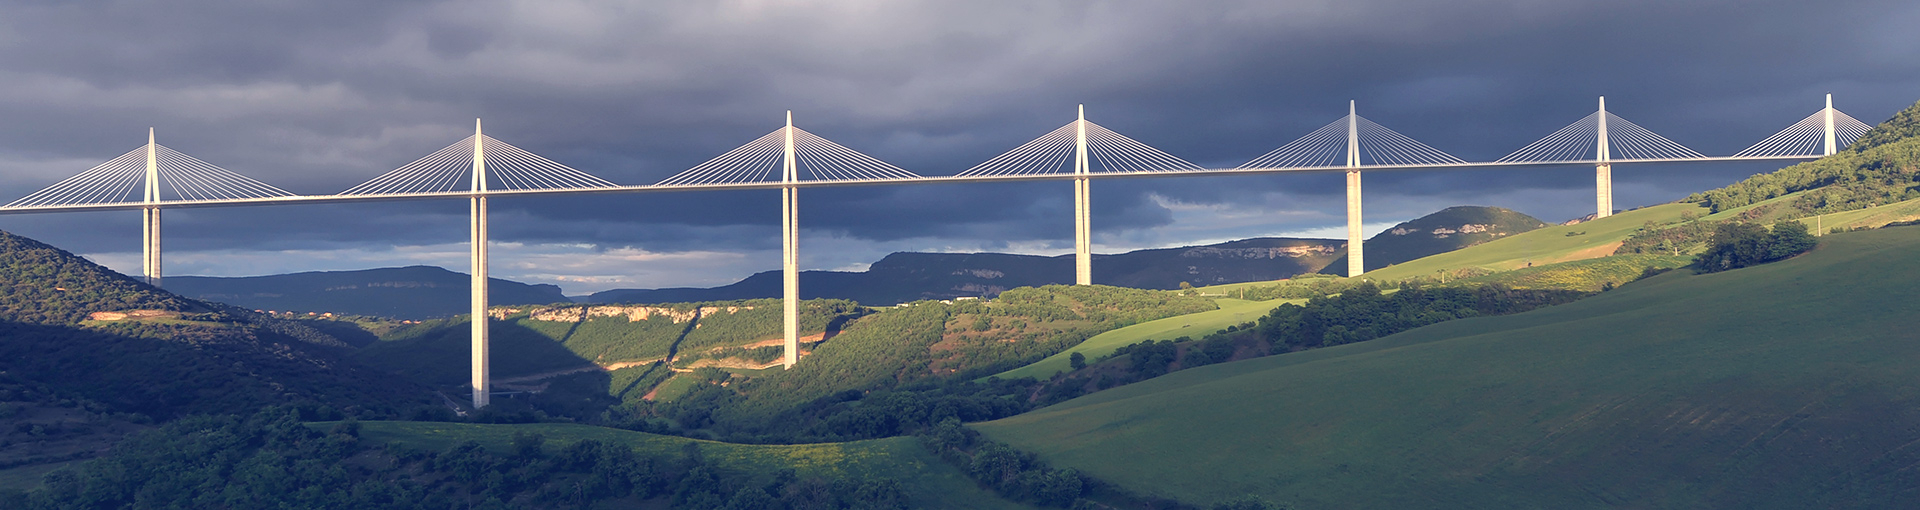 viaduc de millau - Photo